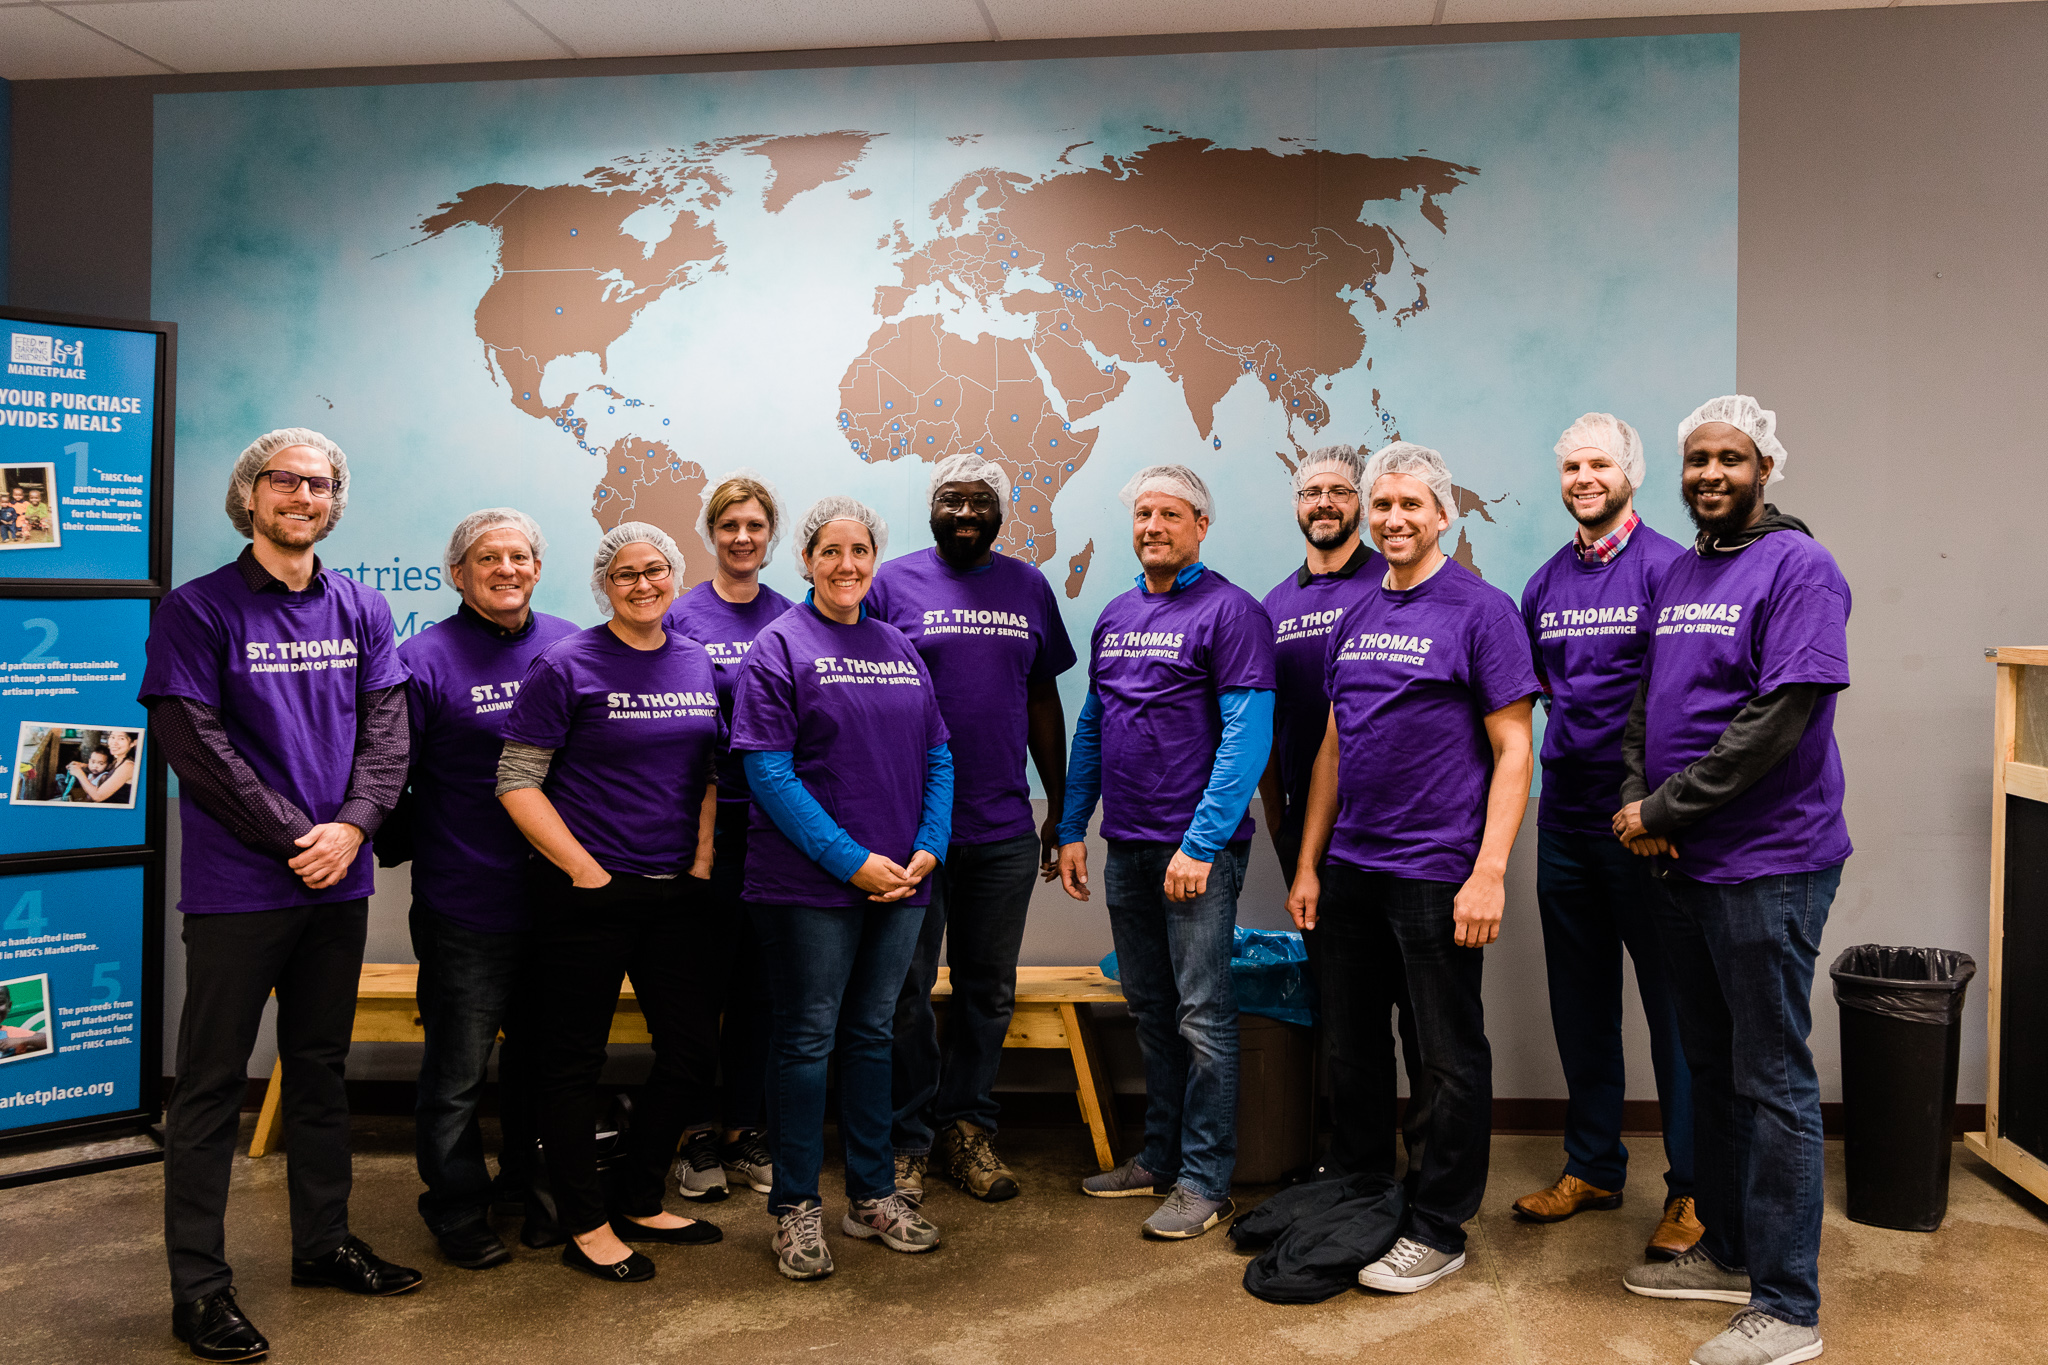 3m employees pose for a picture at Feed My Starving Children